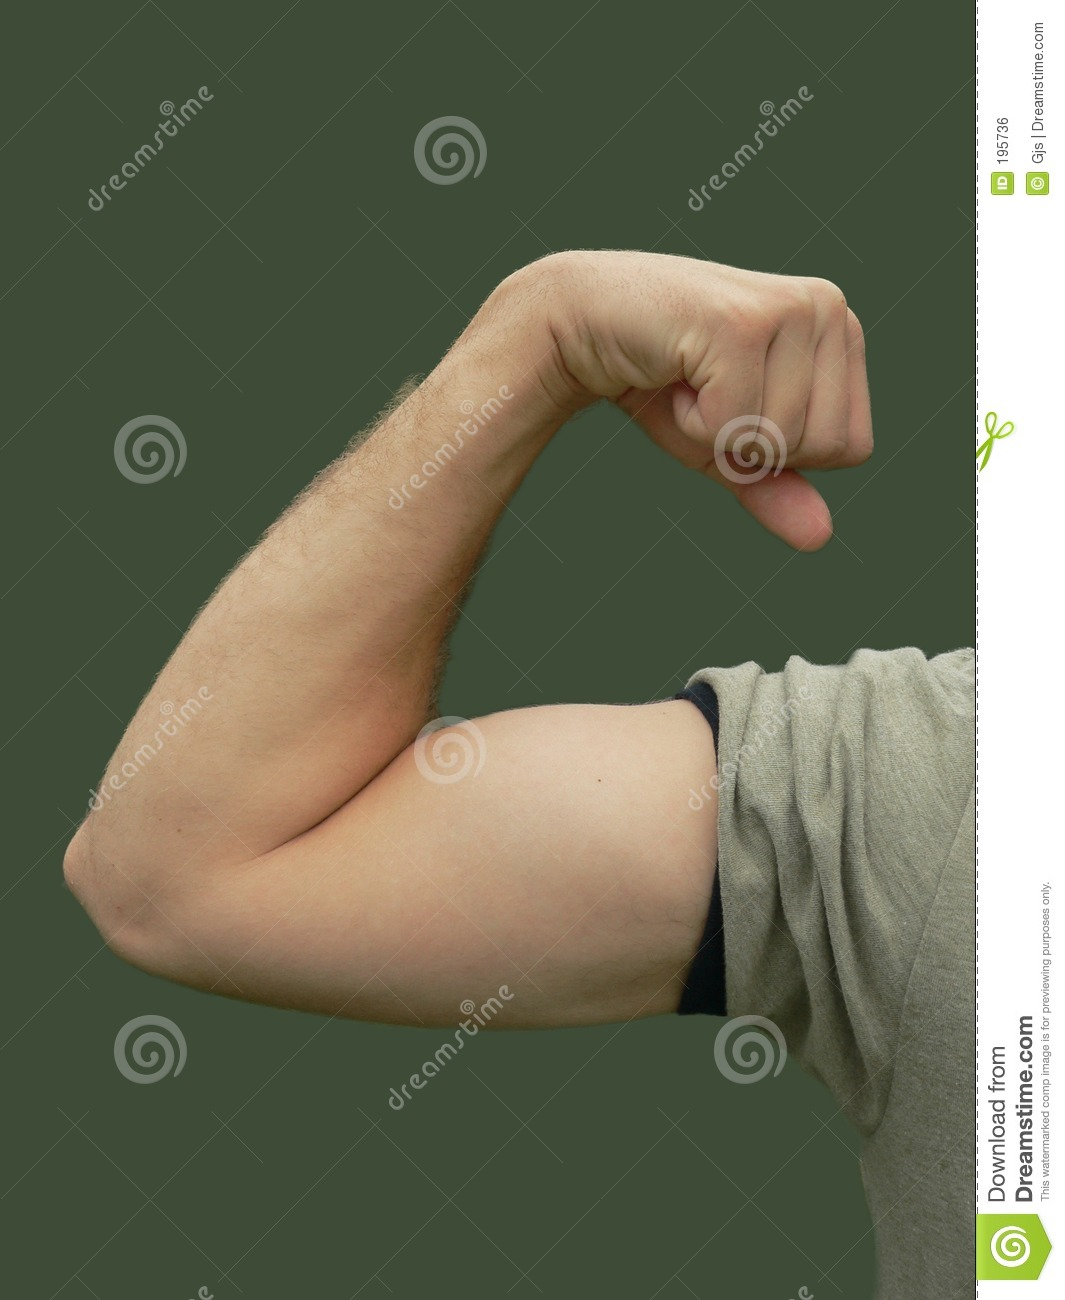 Young man flexing bicep muscle, isolated on solid background.